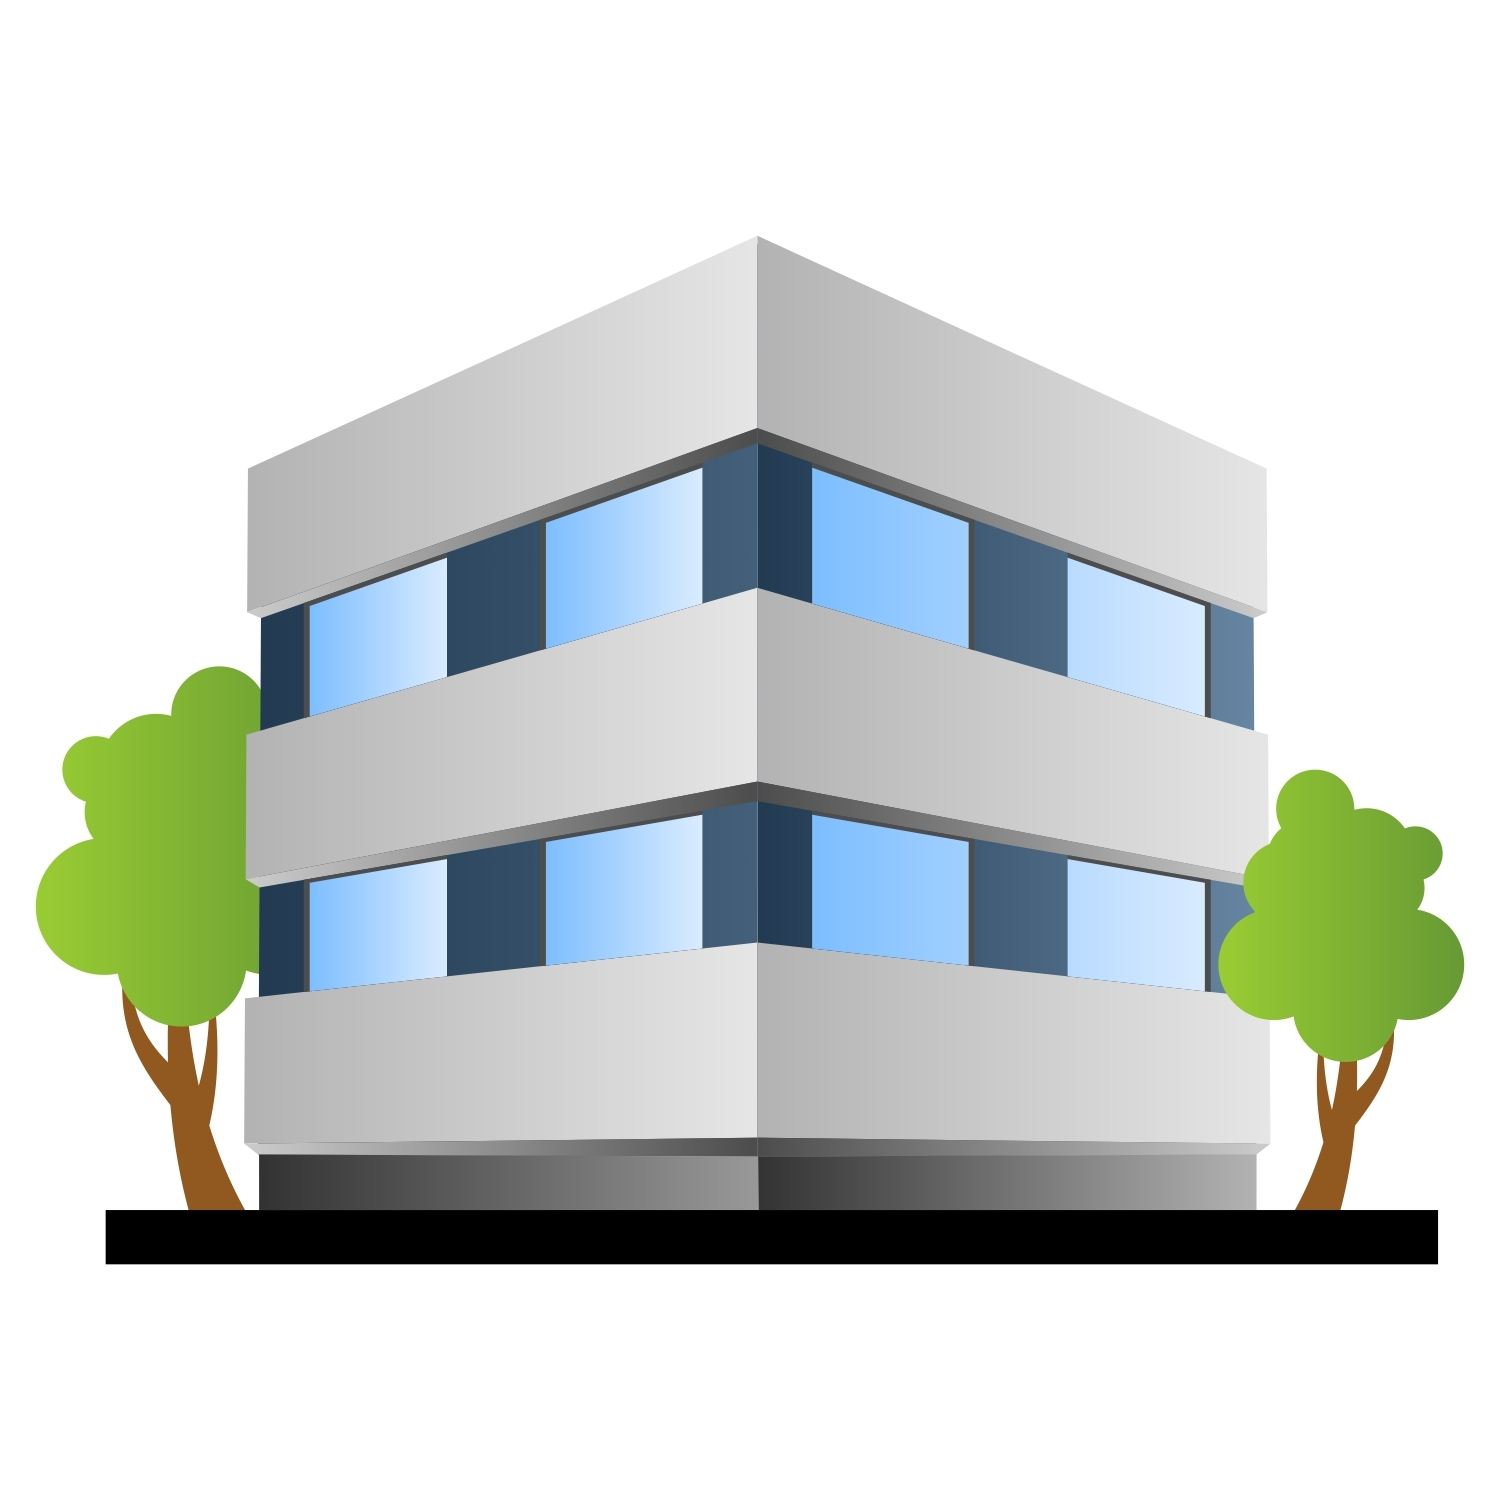 Doctors clipart office building. Small shopping kidf appealing